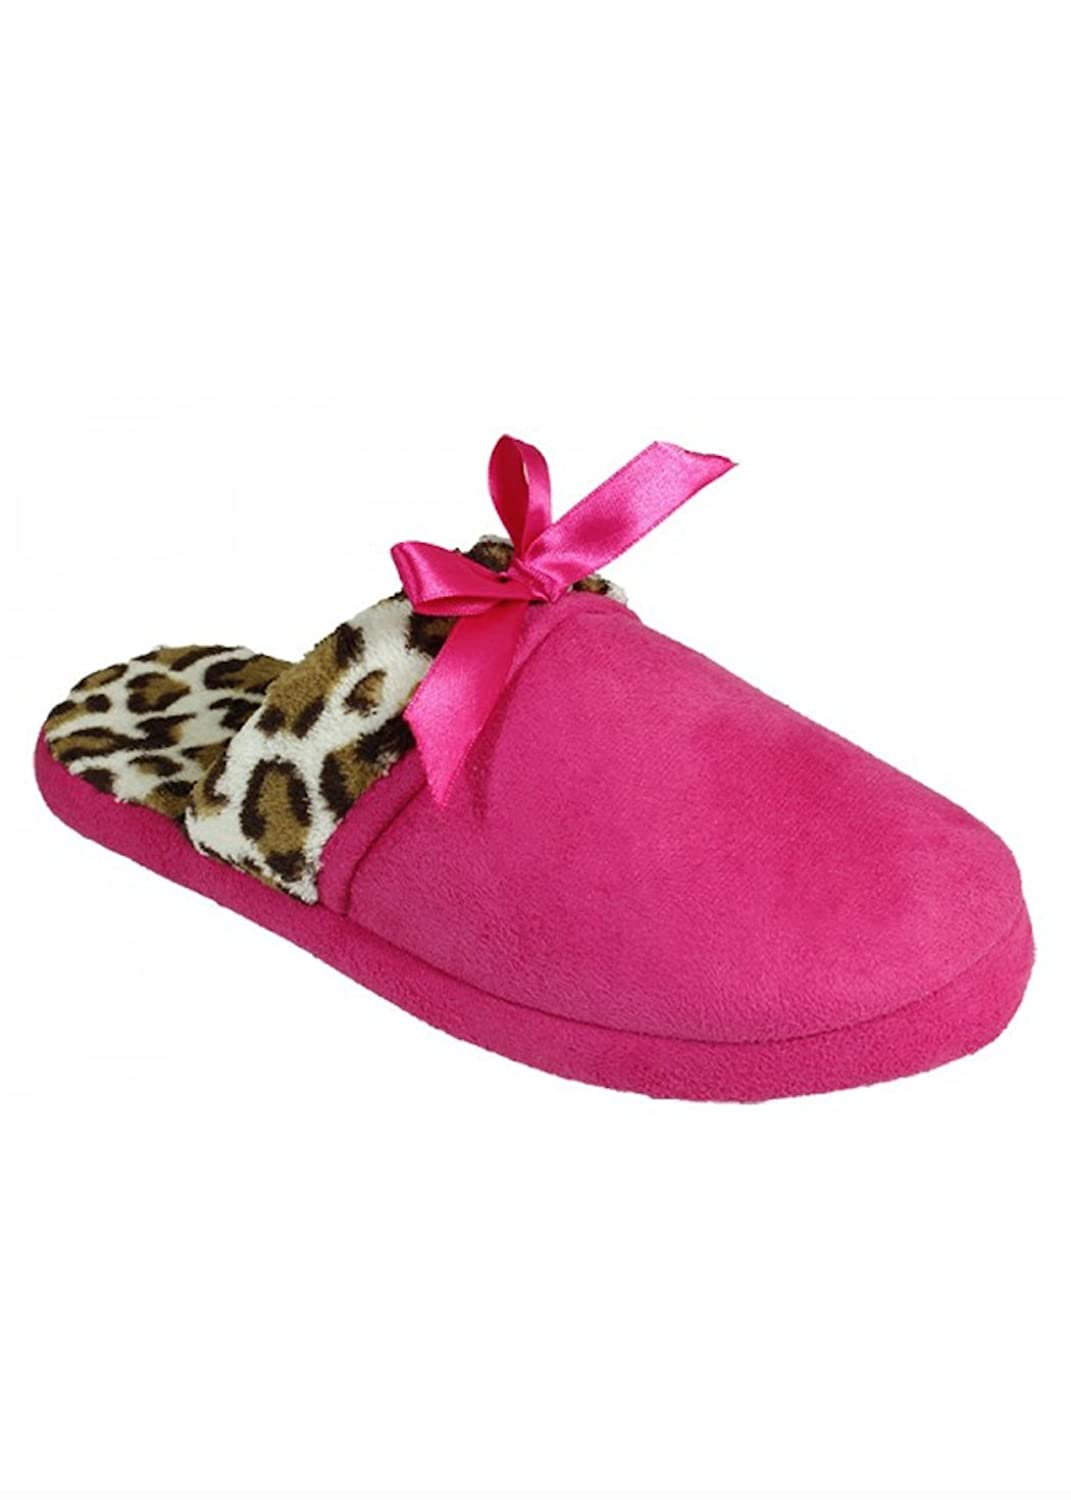 Comfy Microsuede Faux Fur Slippers for Women, Ultimate Fashion and Comfort (X-Large, Pink)